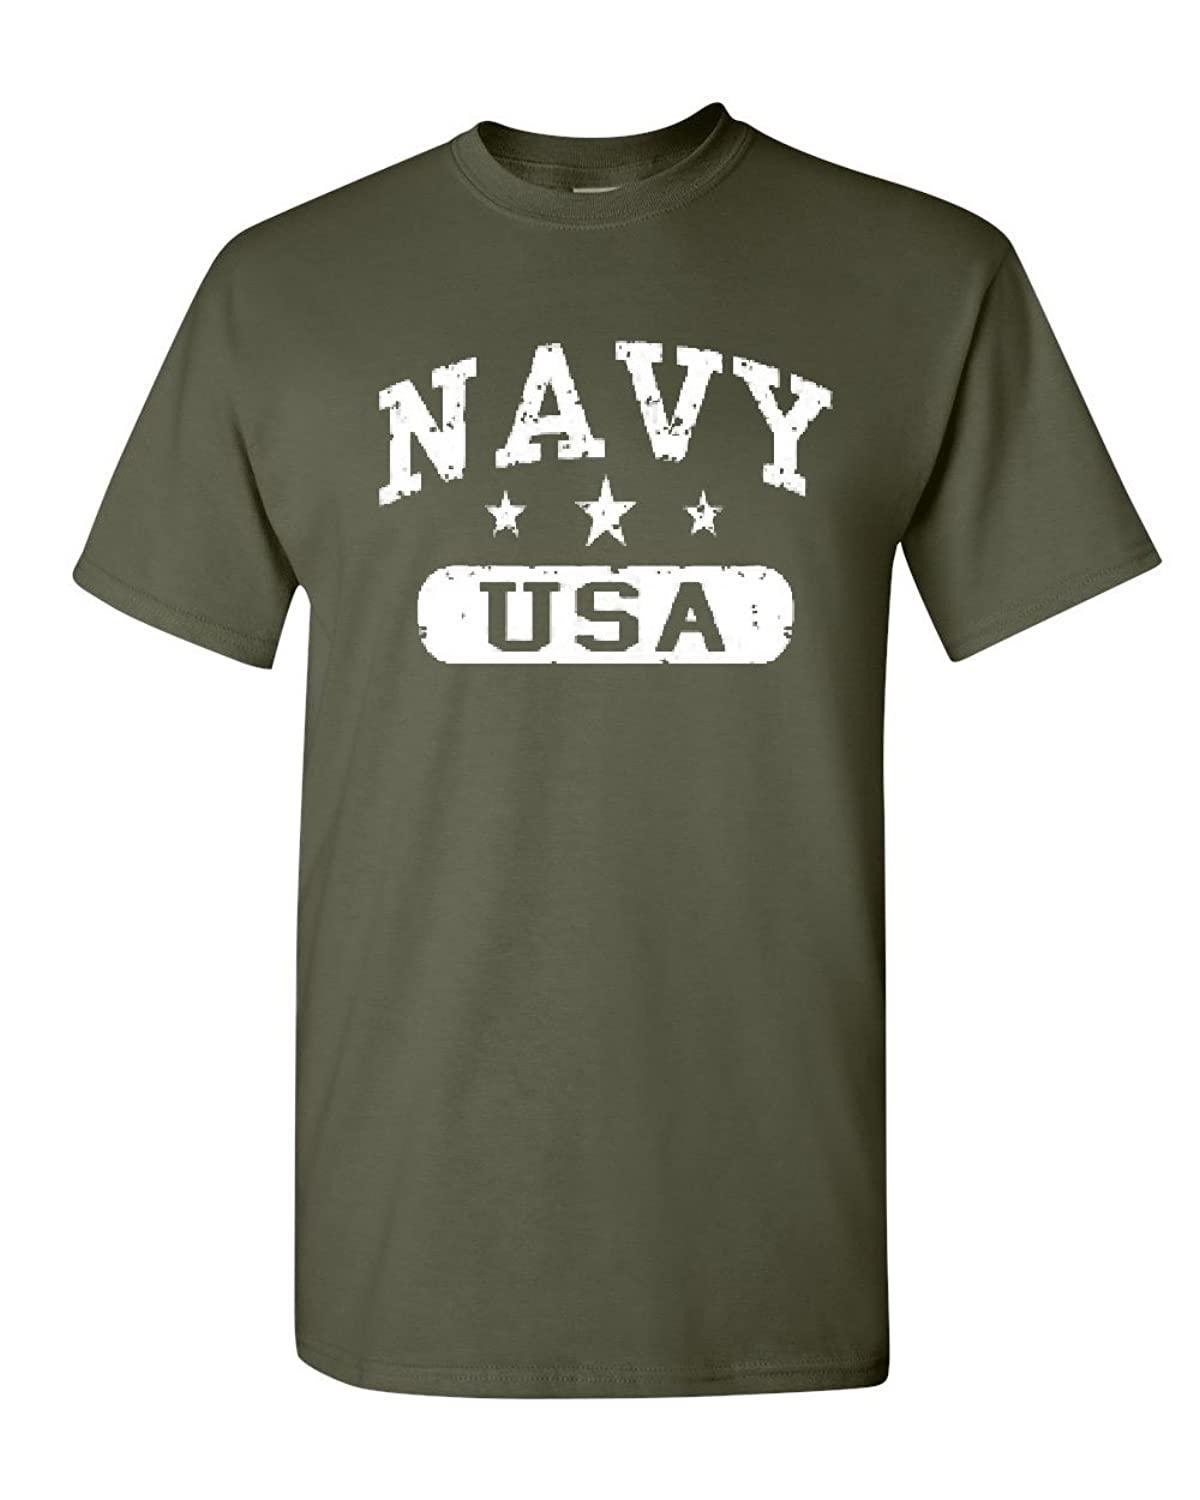 Navy USA T-Shirt United States Navy Military Tee Shirt